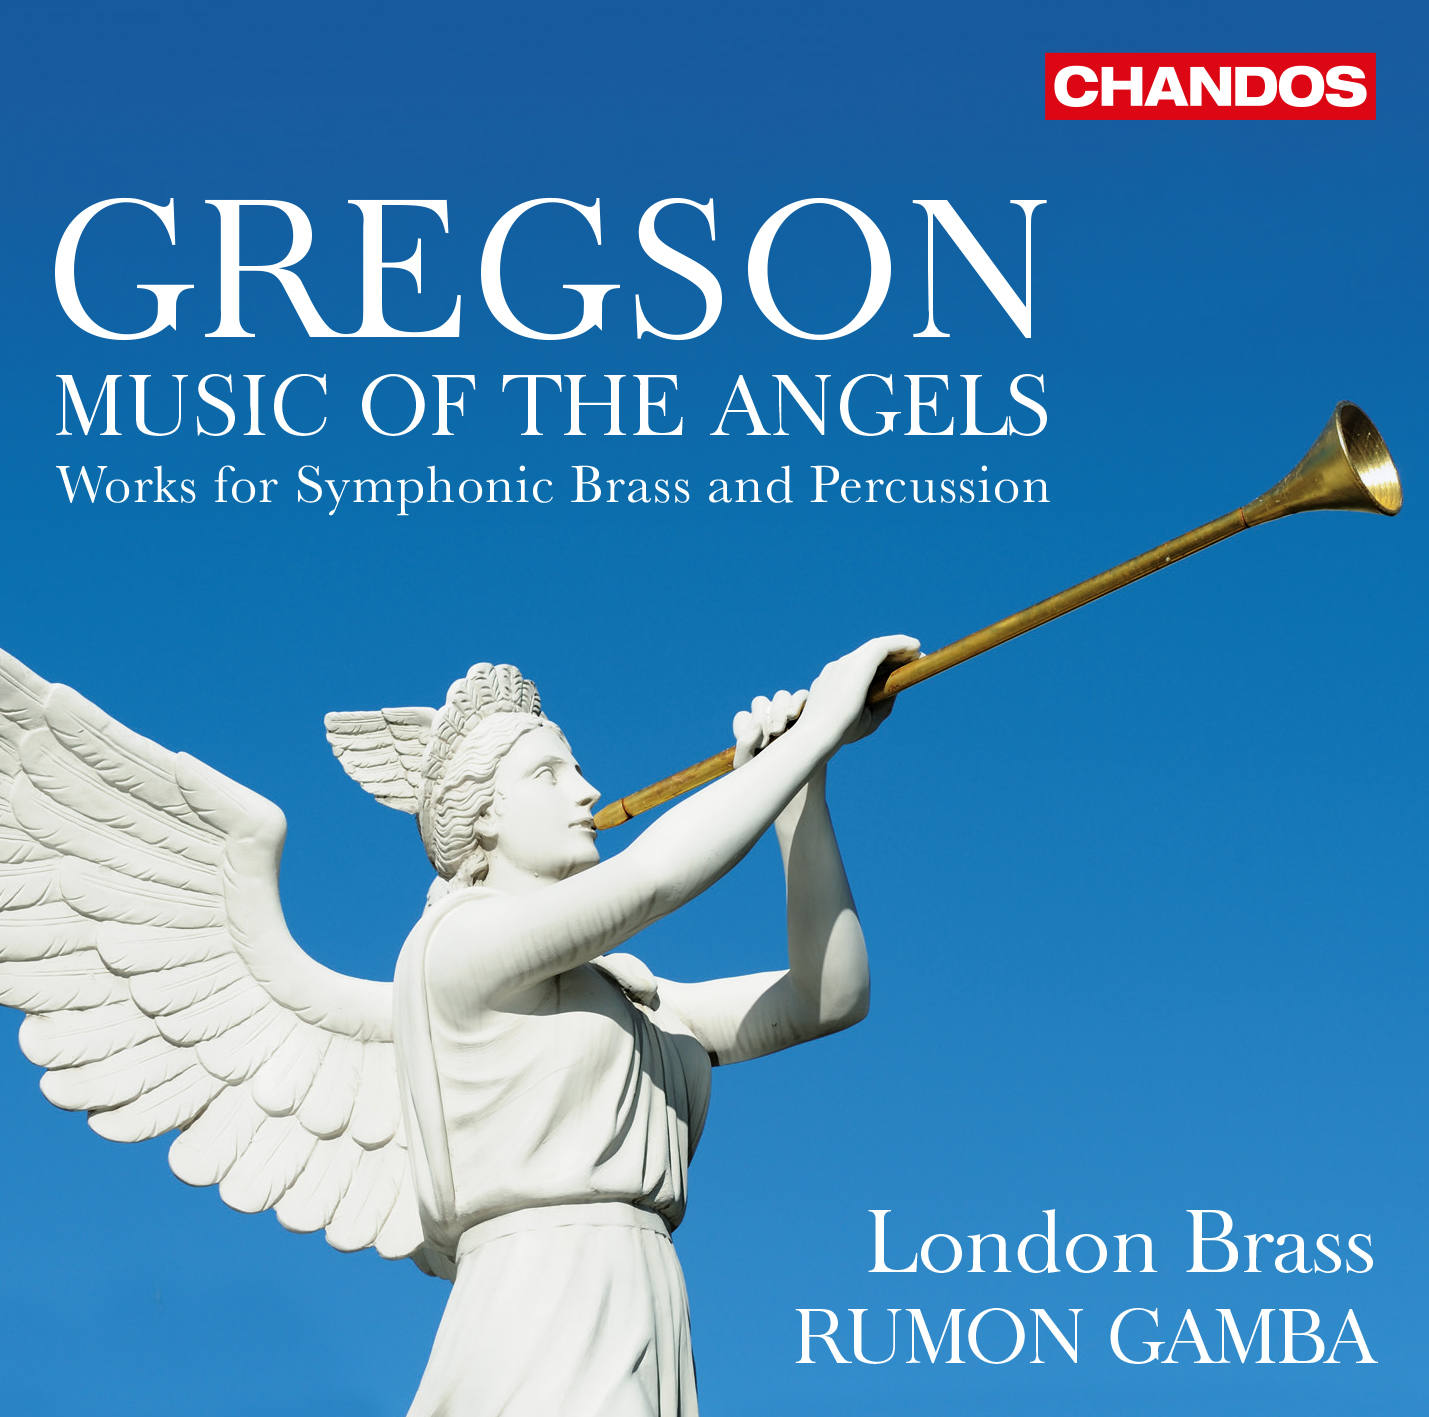 New Release! Music of the Angels released on 27 March. Recorded by London Brass and a stellar lineup of guests in June 2019, conducted by Rumon Gamba.